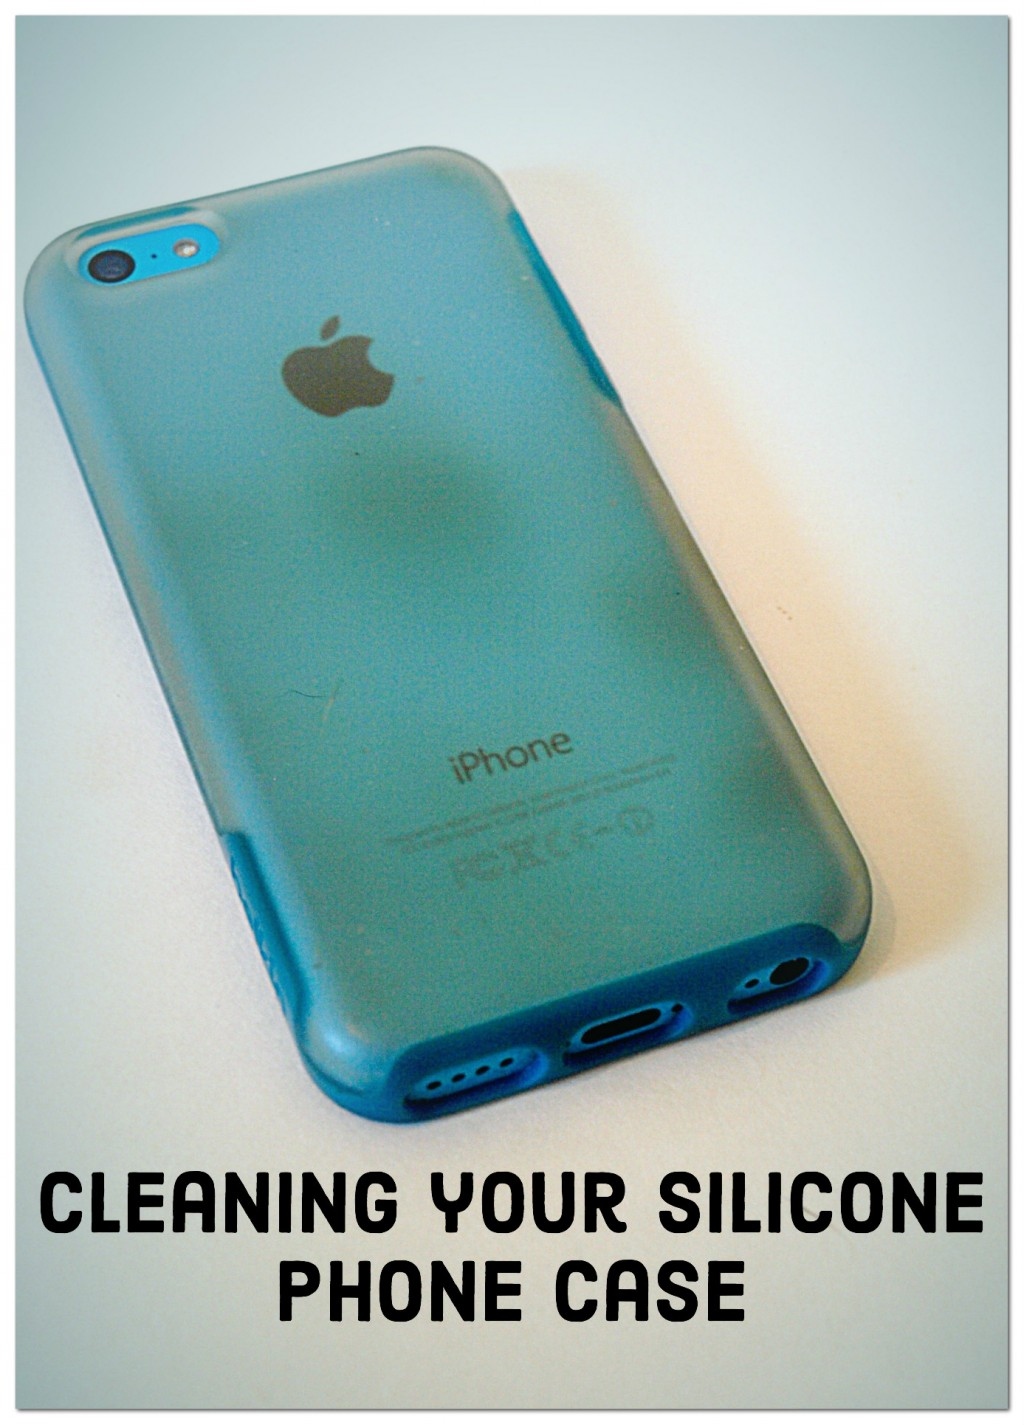 How to Clean a Silicone Phone Case